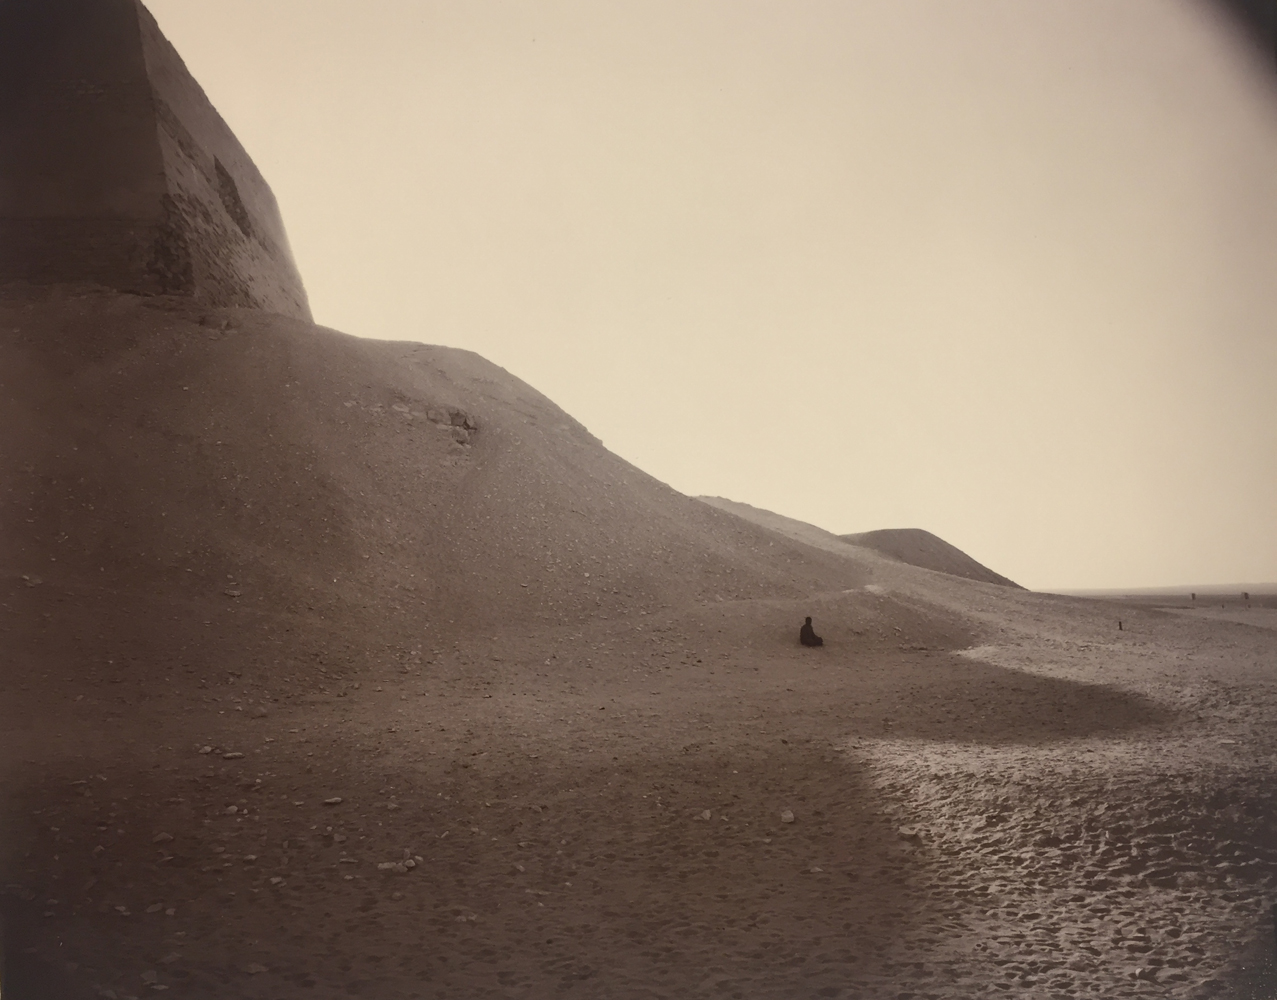 Linda Connor, Man in Pyramid Shadow, Egypt, 1989, gold toned print, 8 x 10 inches